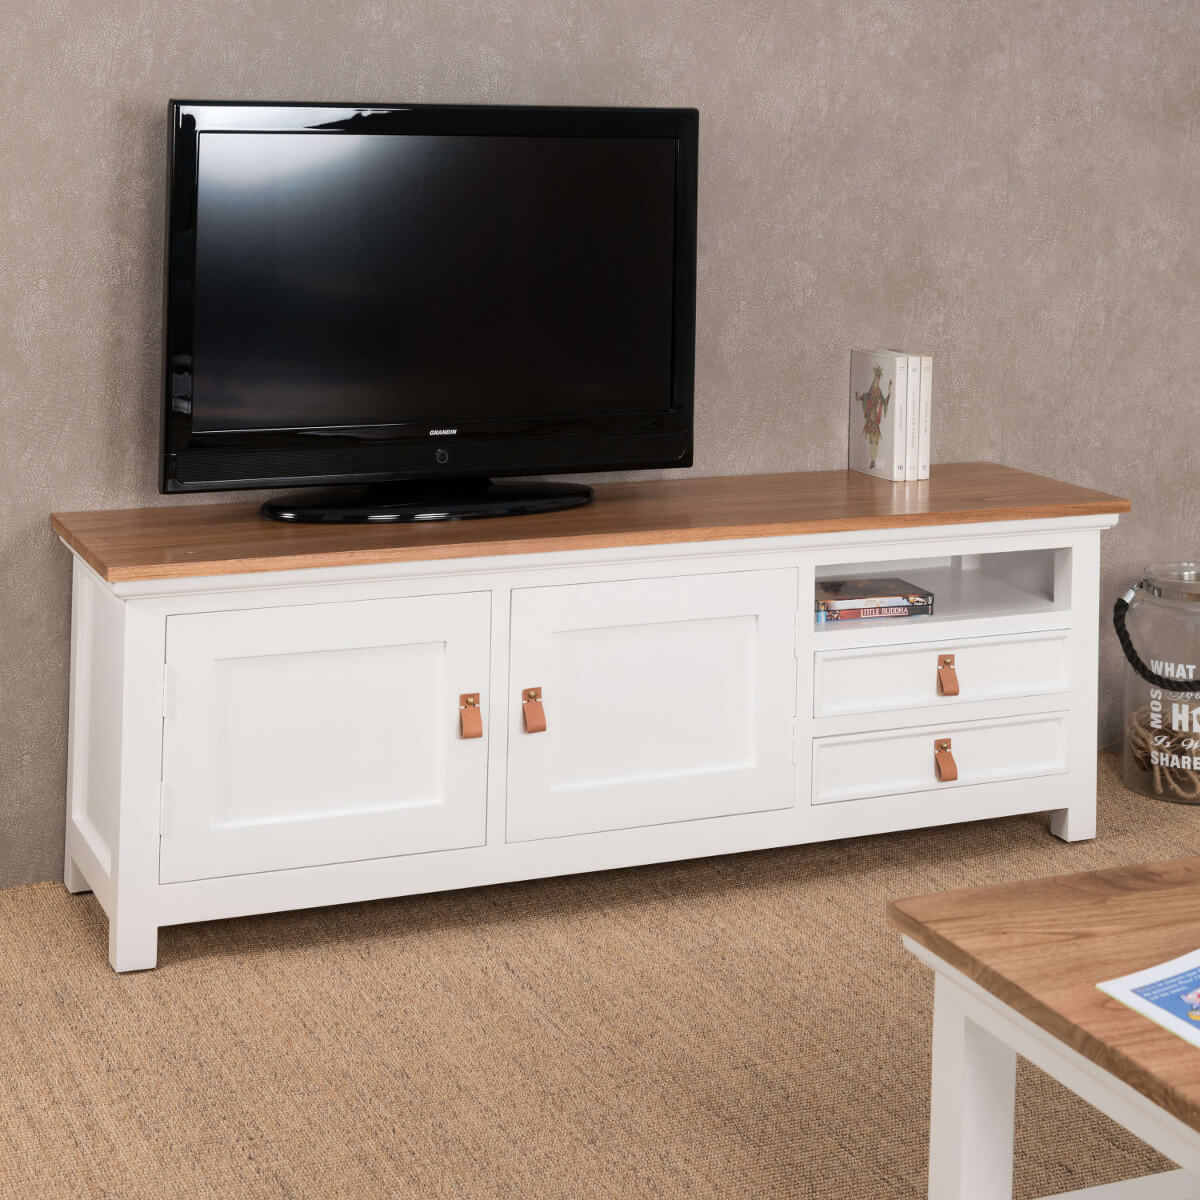 Meuble tv salon bois massif teck et pin chic rectangle blanc naturel l - Meubles de salon en bois ...